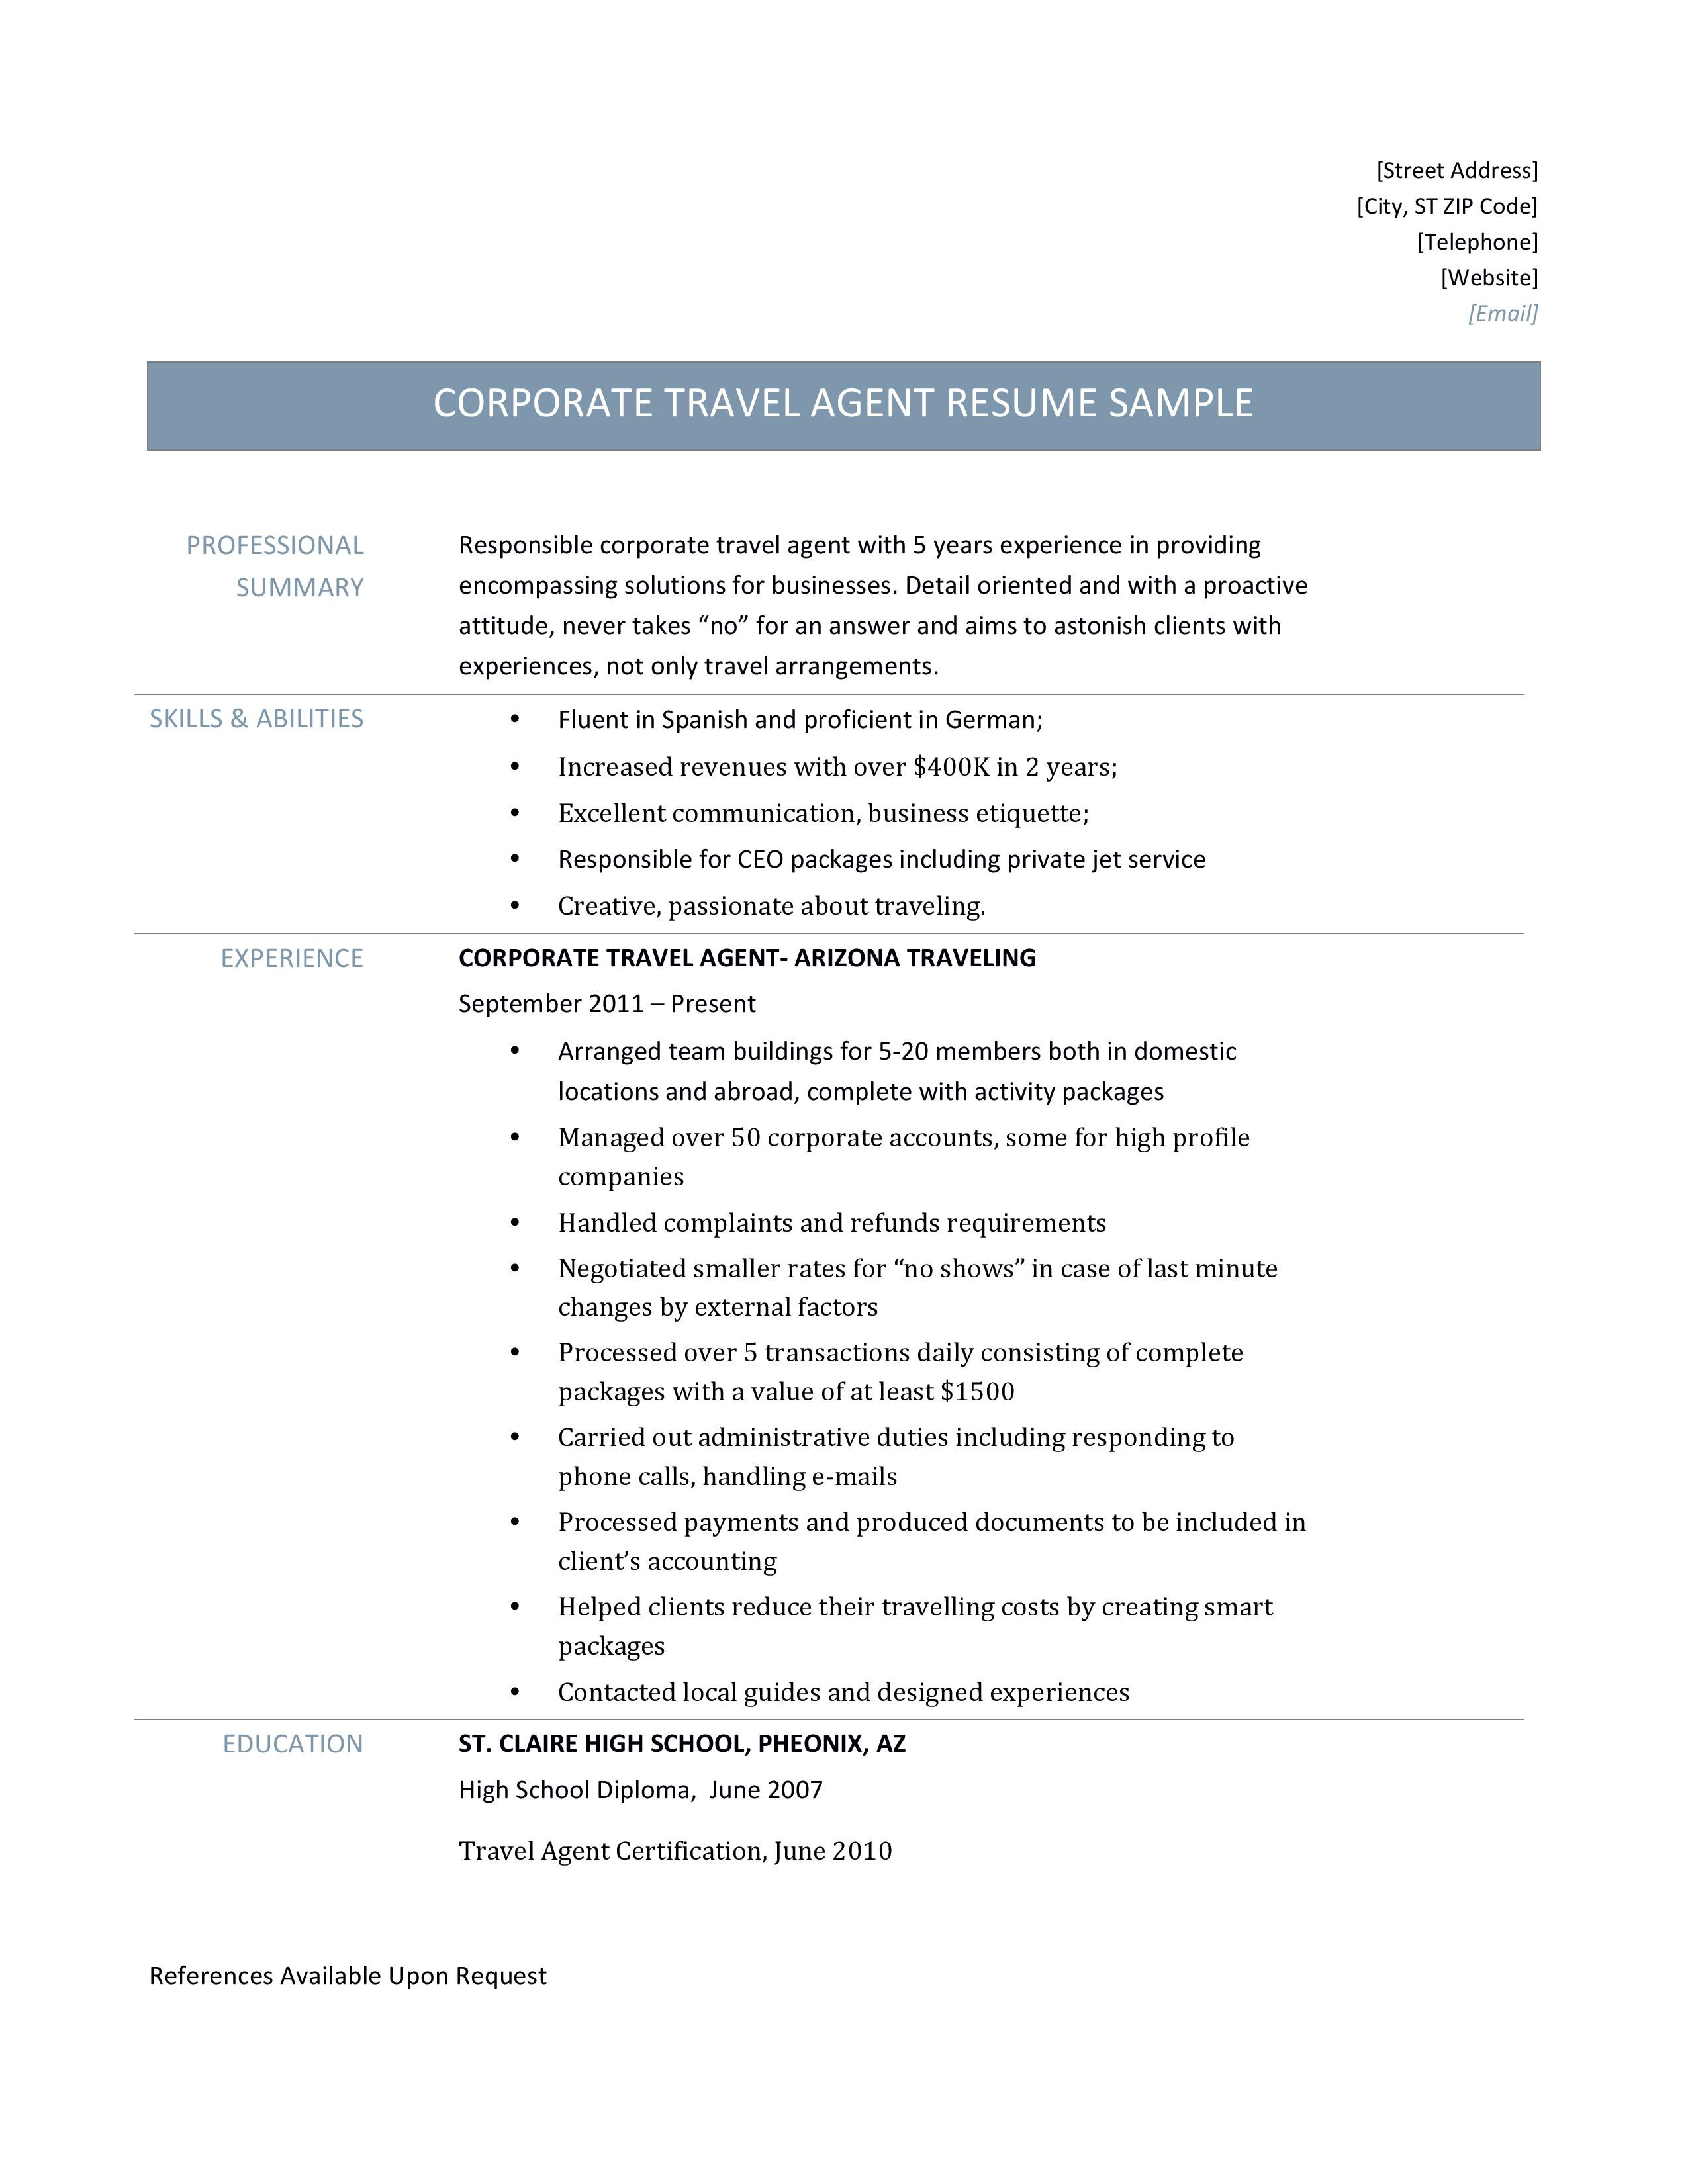 Corporate Travel Agent Resume Template And Job Description